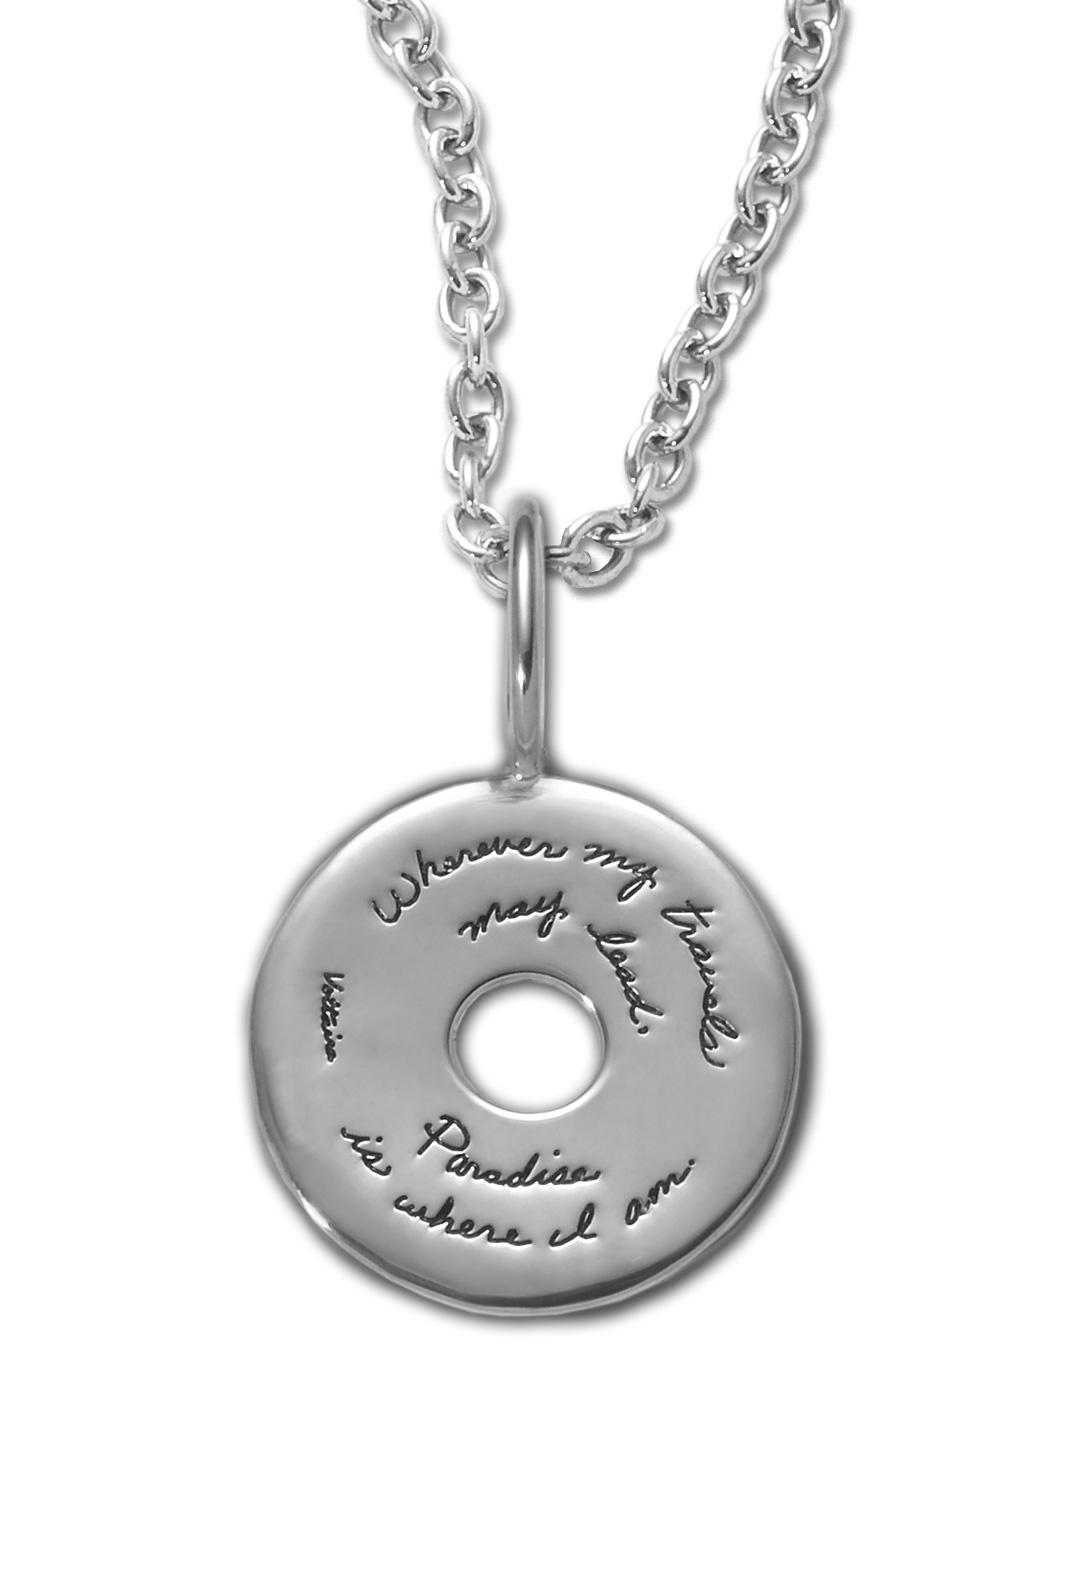 Bb becker inspirational jewelry paradise pendant sterling silver inspirational pendant circle shape with circular cutout in center quote reads wherever my aloadofball Image collections